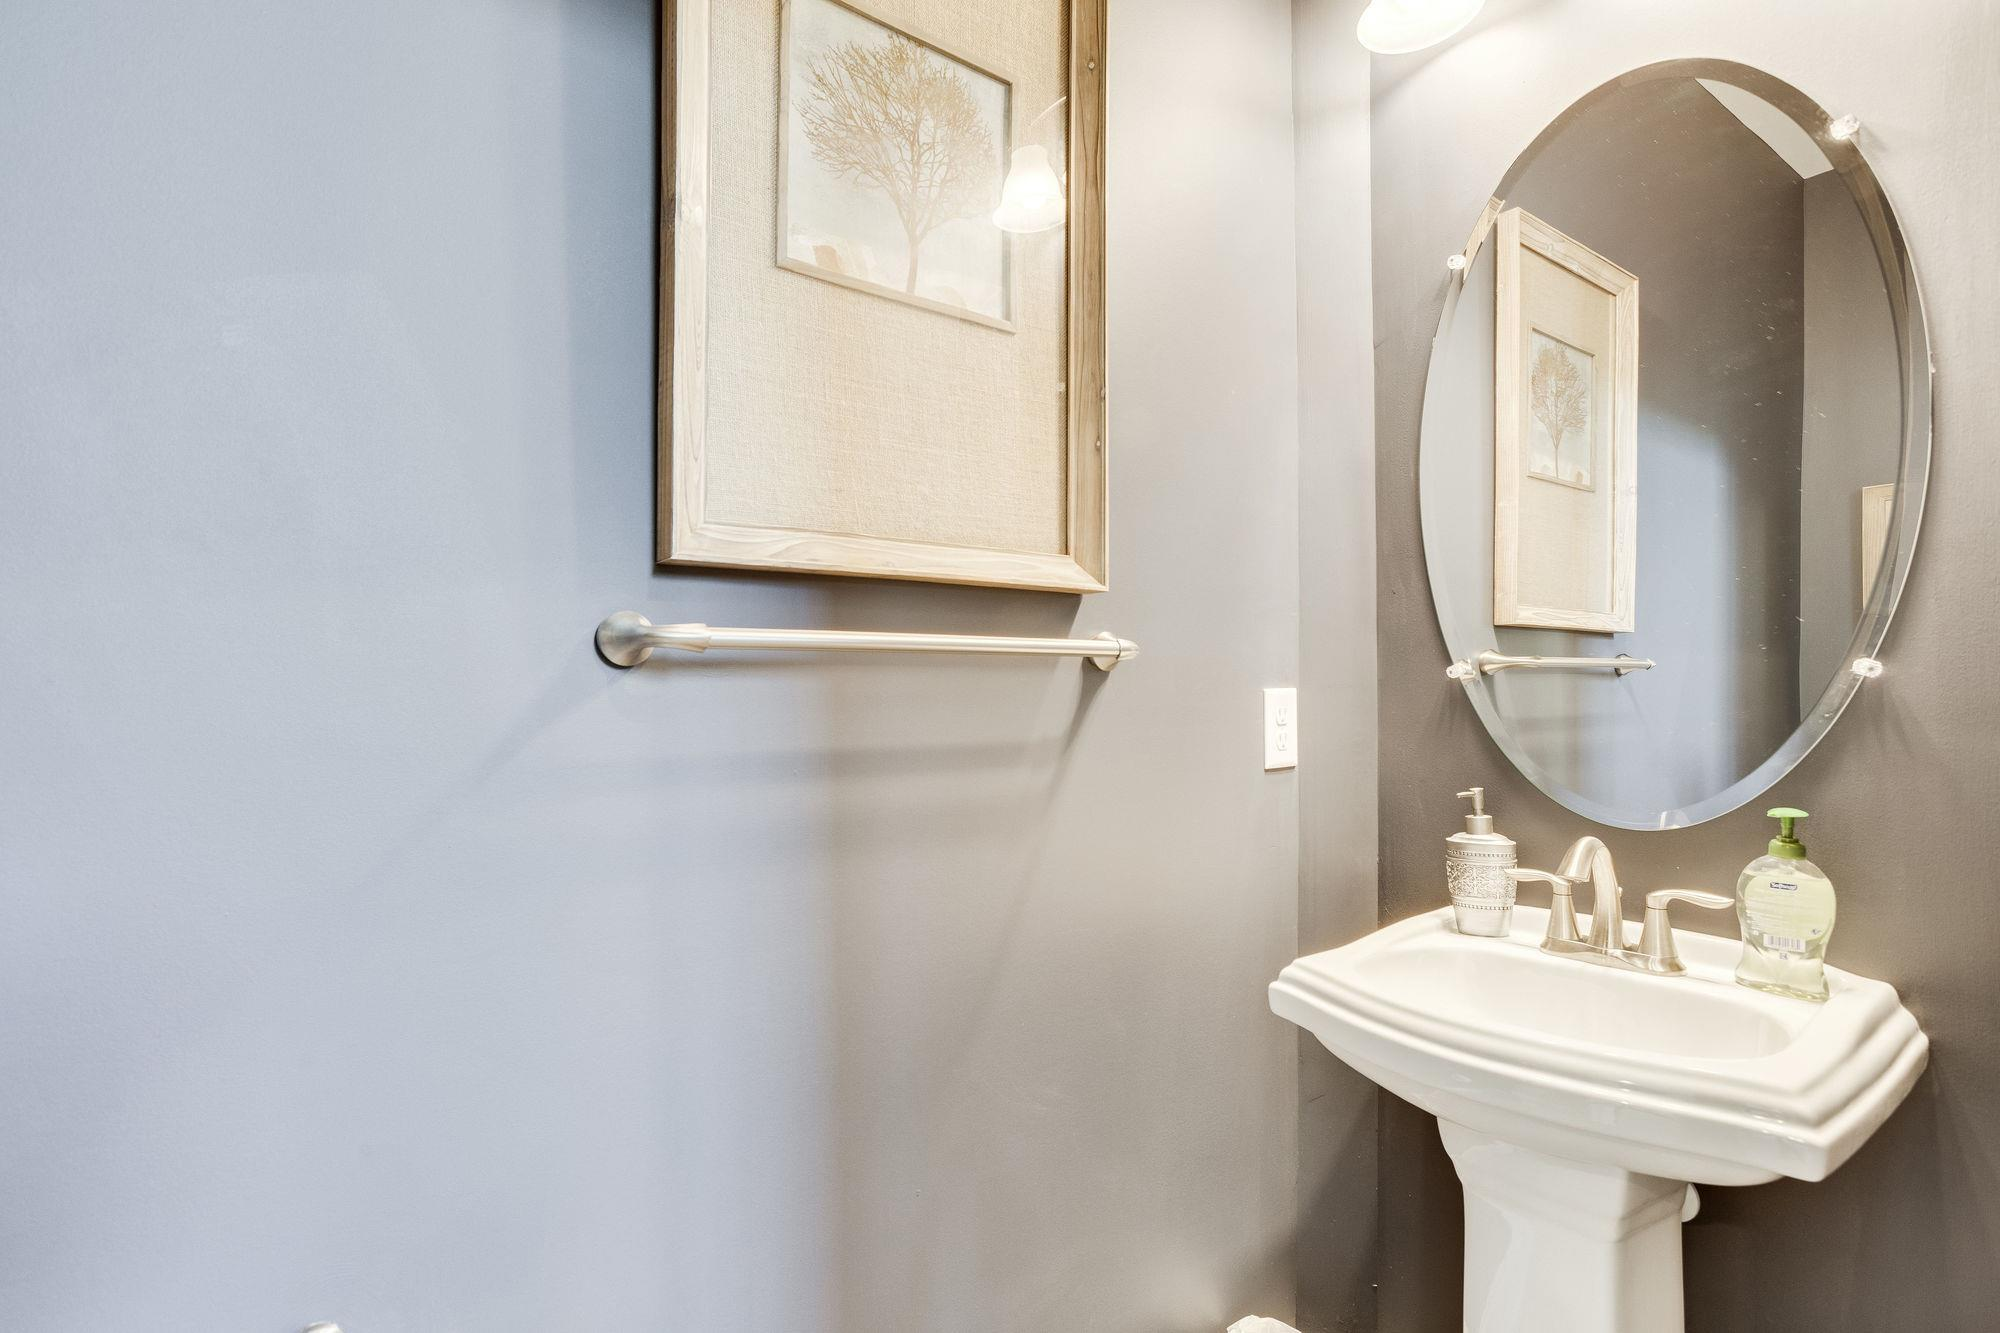 Bathroom featured in the Tidewater By Williamsburg Homes LLC in Baltimore, MD